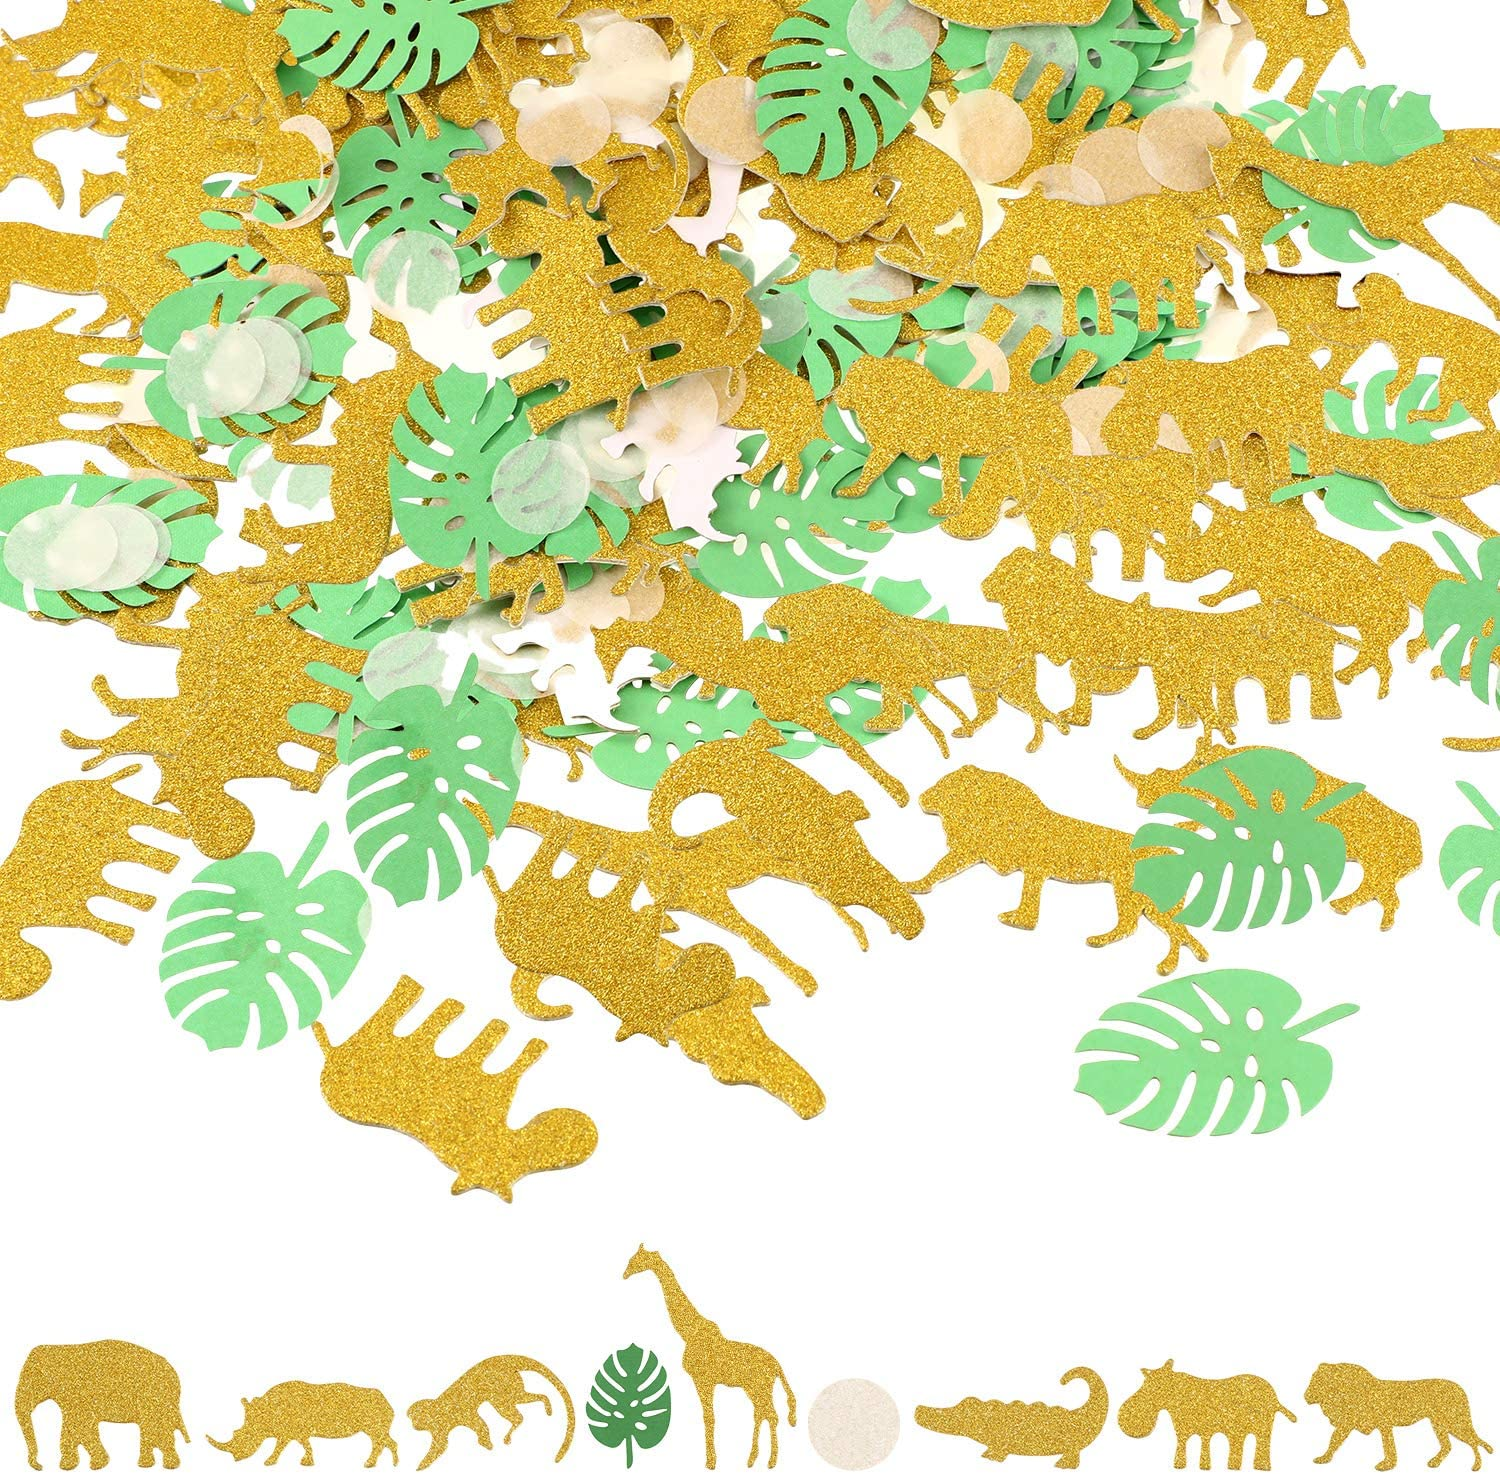 200 Pieces Jungle Animal Confetti Safari Theme Table Confetti Zoo Animal Shape Glitter Confetti for Baby Shower Birthday Party Supplies and Decorations